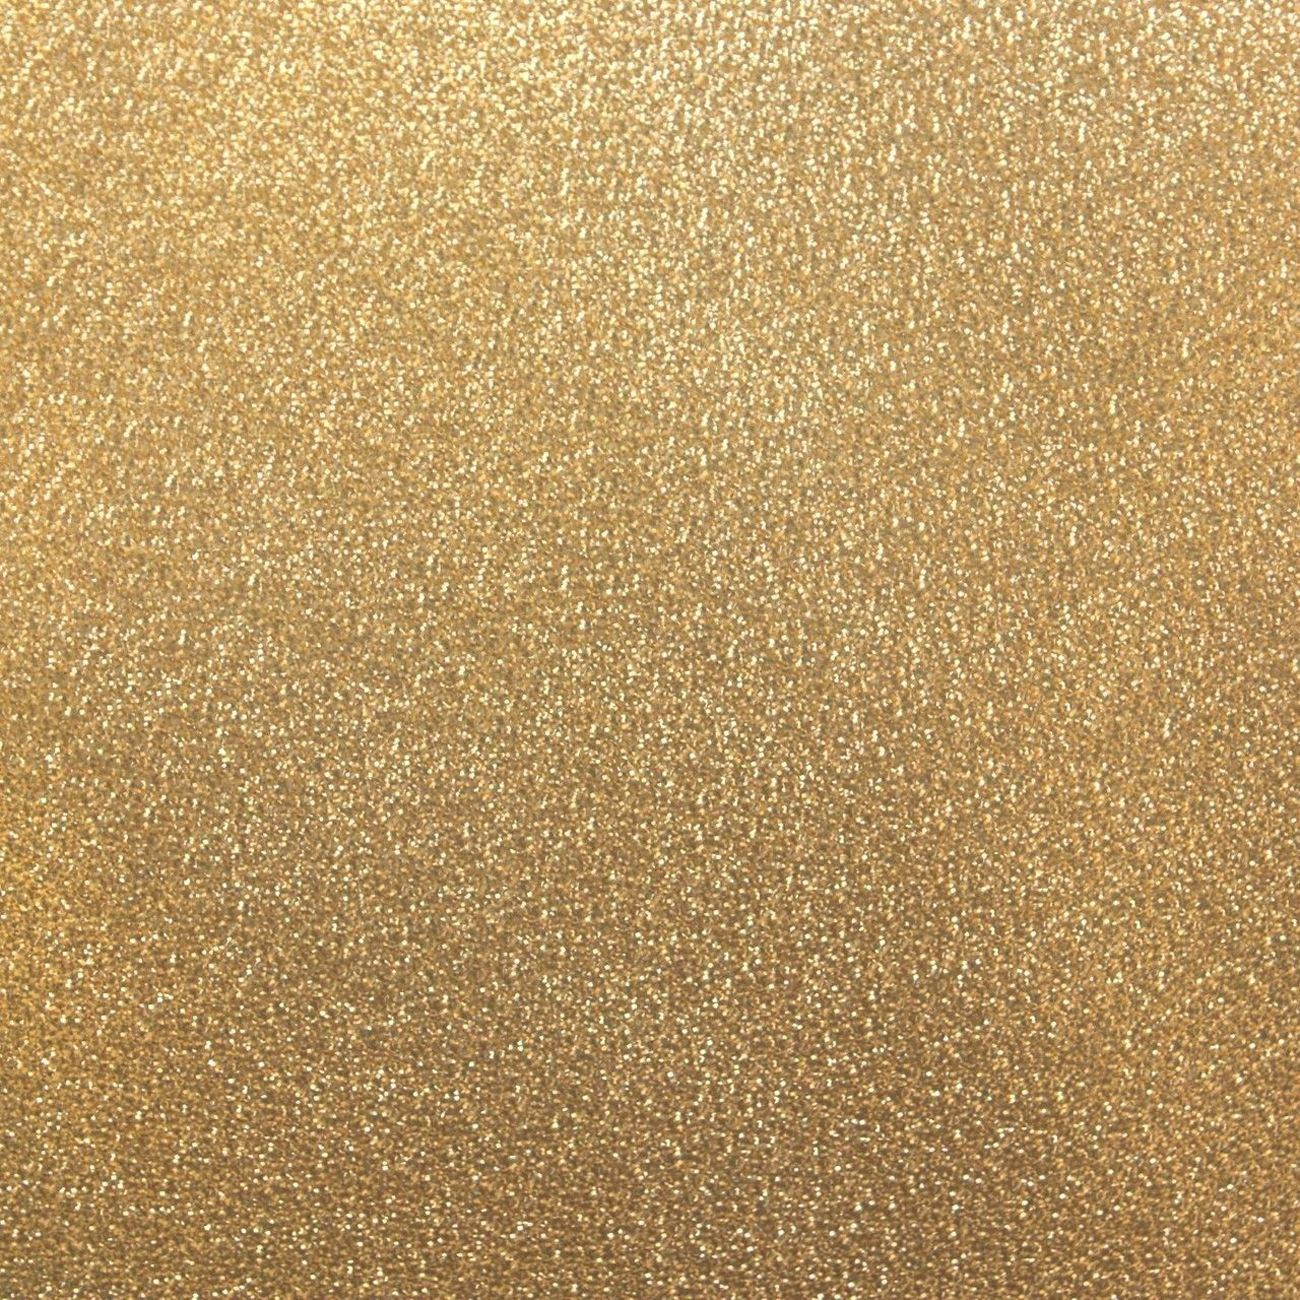 HOLOGRAPHIC GLITTER WALLPAPER ROLLS - GOLD - DL40705 - FINE DECOR NEW ...